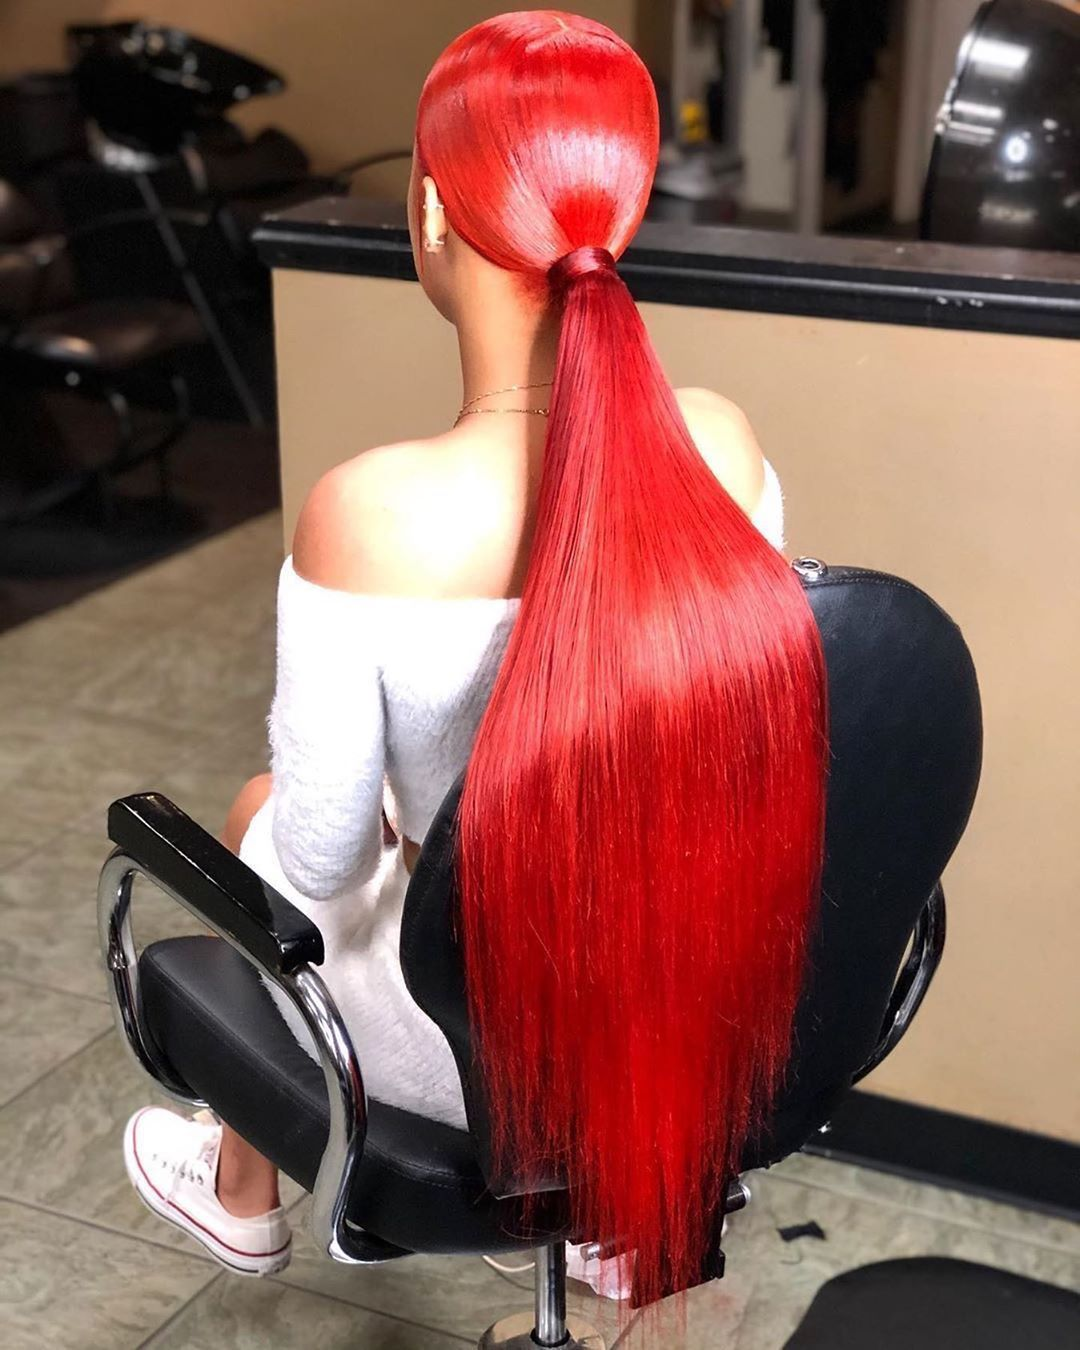 Lm Straight Red Long Lace Front 13x4 Full Lace Human Hair Wig Pre Plucked With Baby Hair Hair Styles Hair Laid Wig Hairstyles